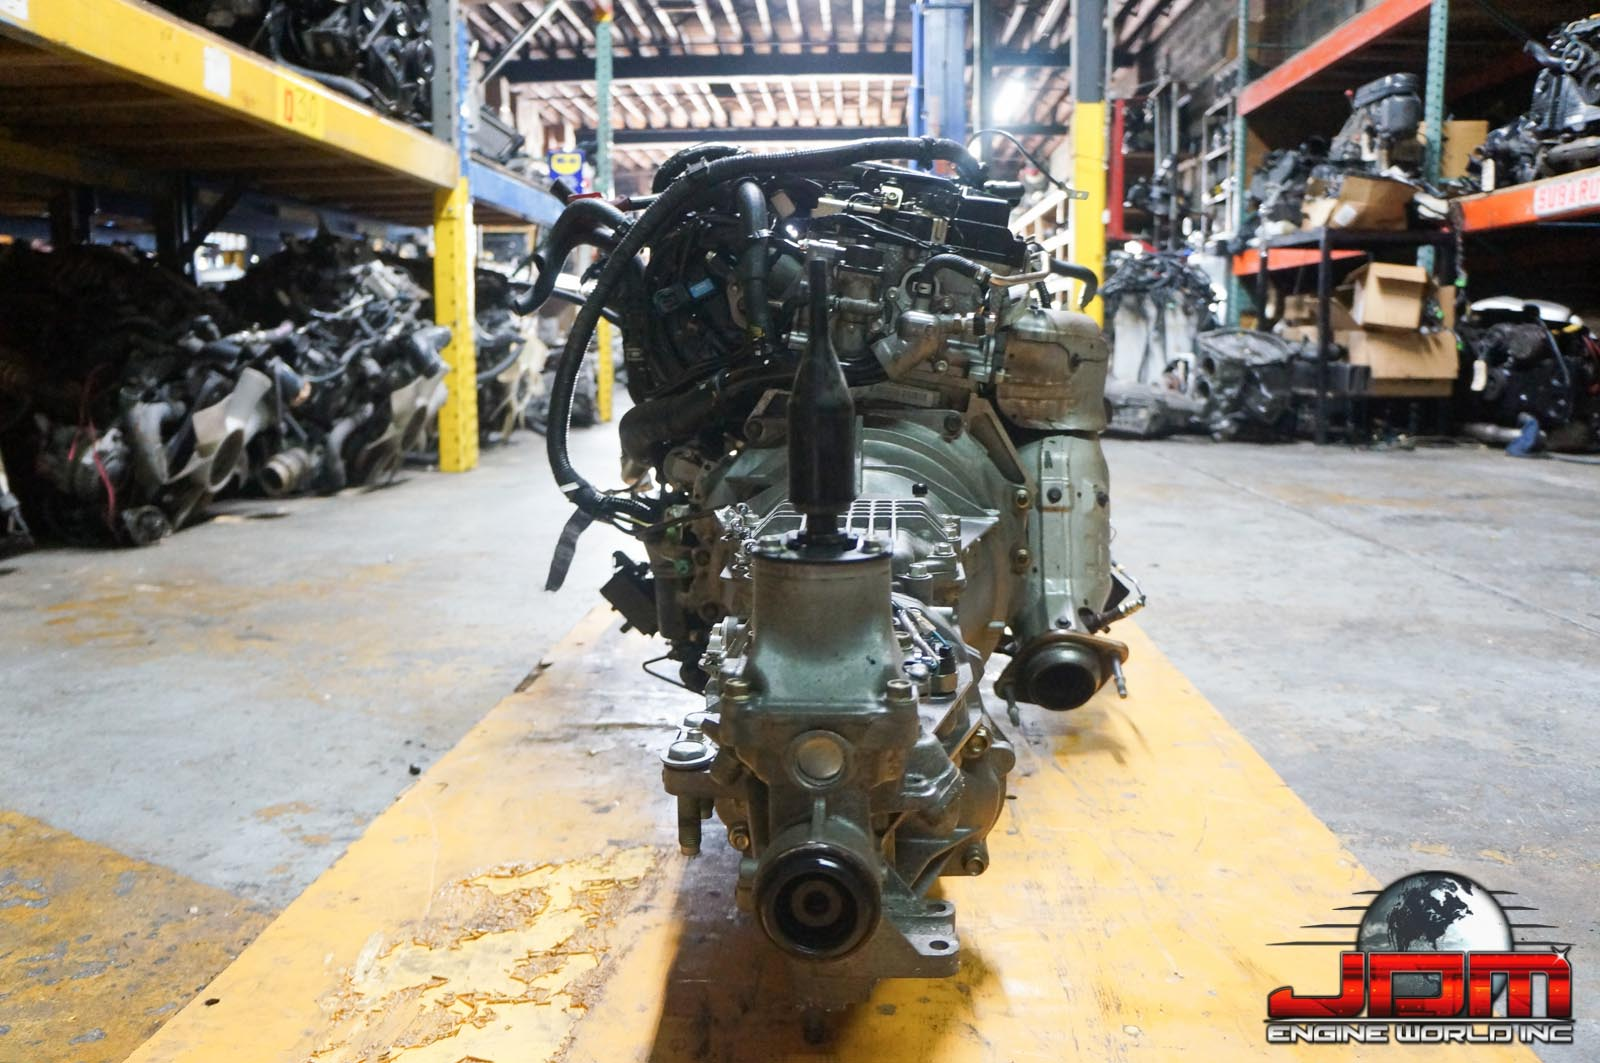 06-12 MAZDA MIATA LF ENGINE & 6 SPEED TRANSMISSION 2.0L DOHC 16V JDM LF-ZE